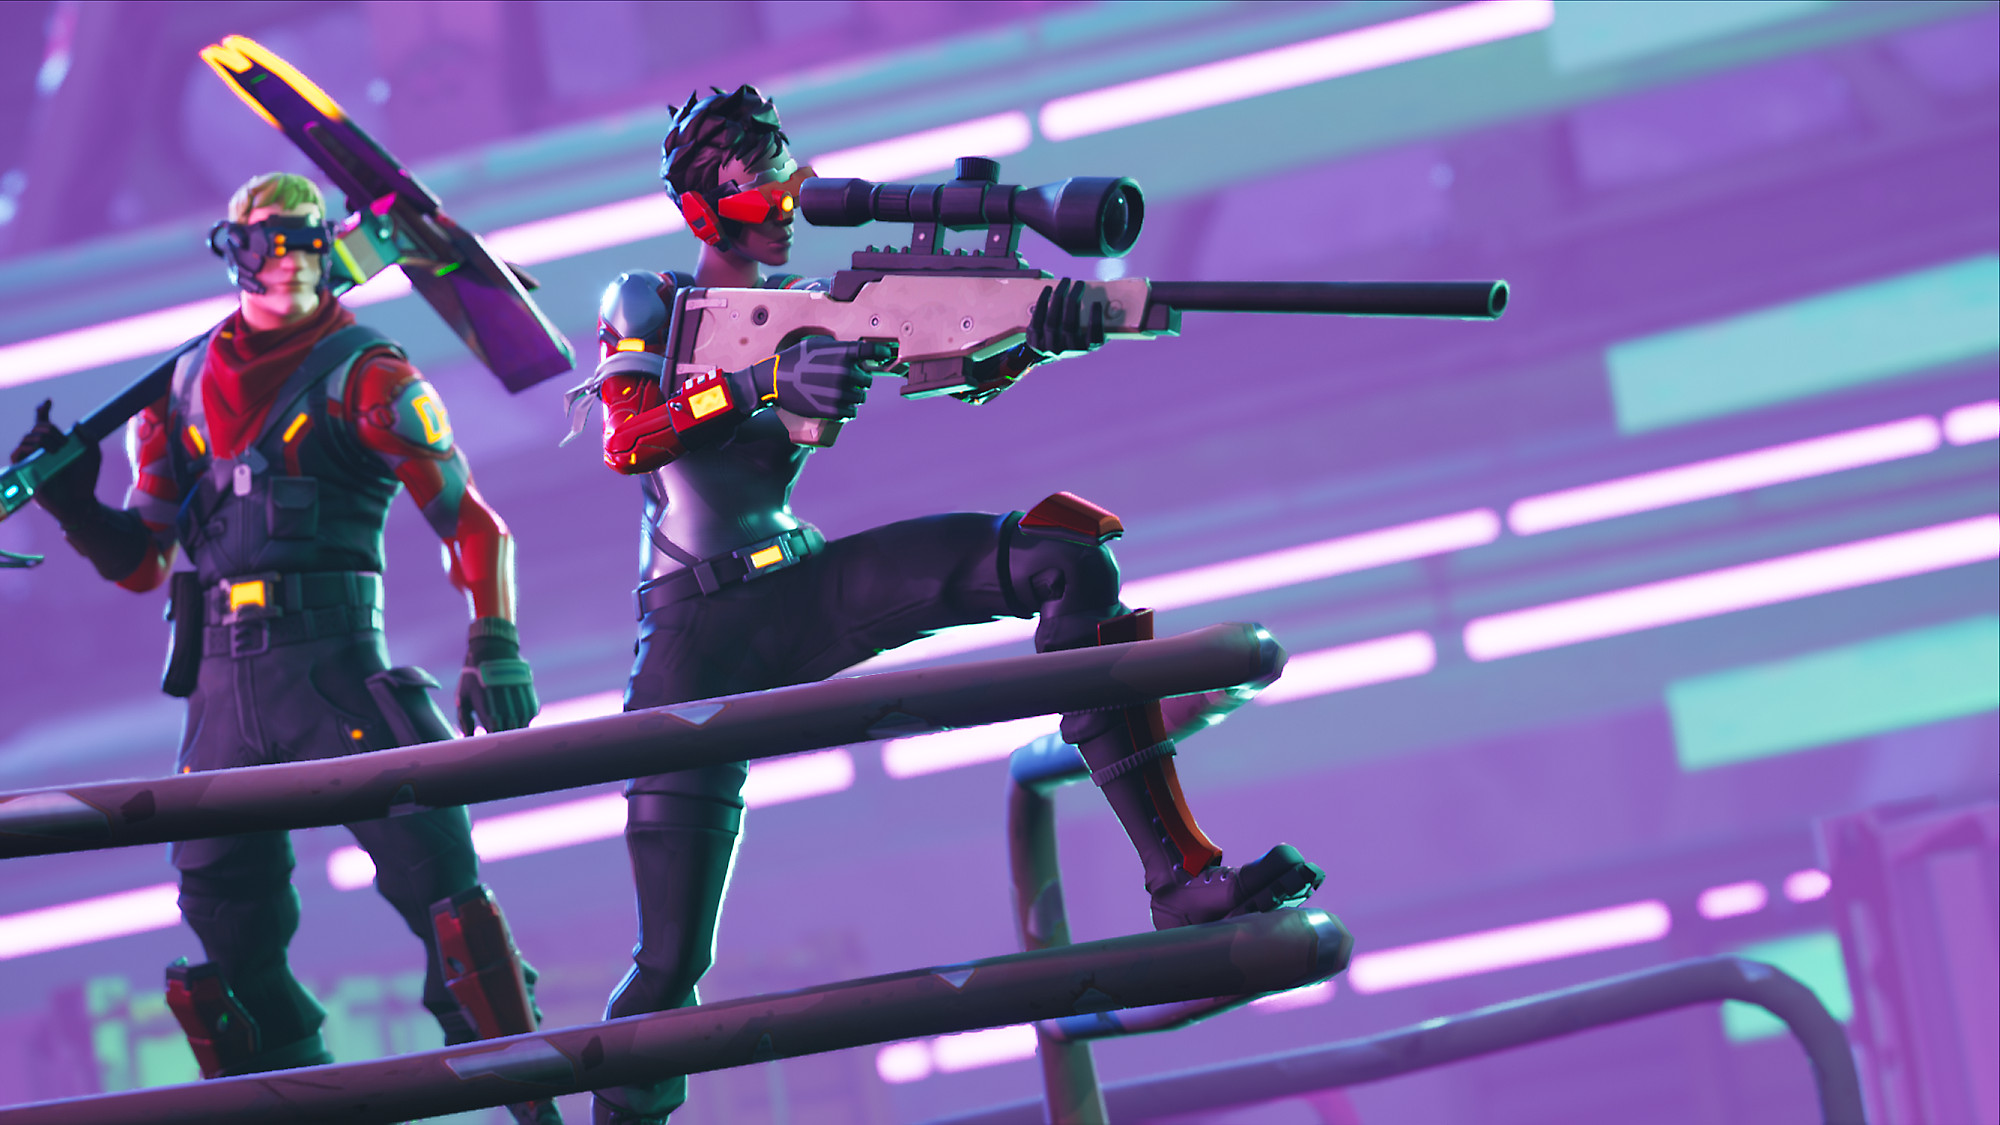 Fortnite will give out $100 million in prize money in 2019 | PC Gamer